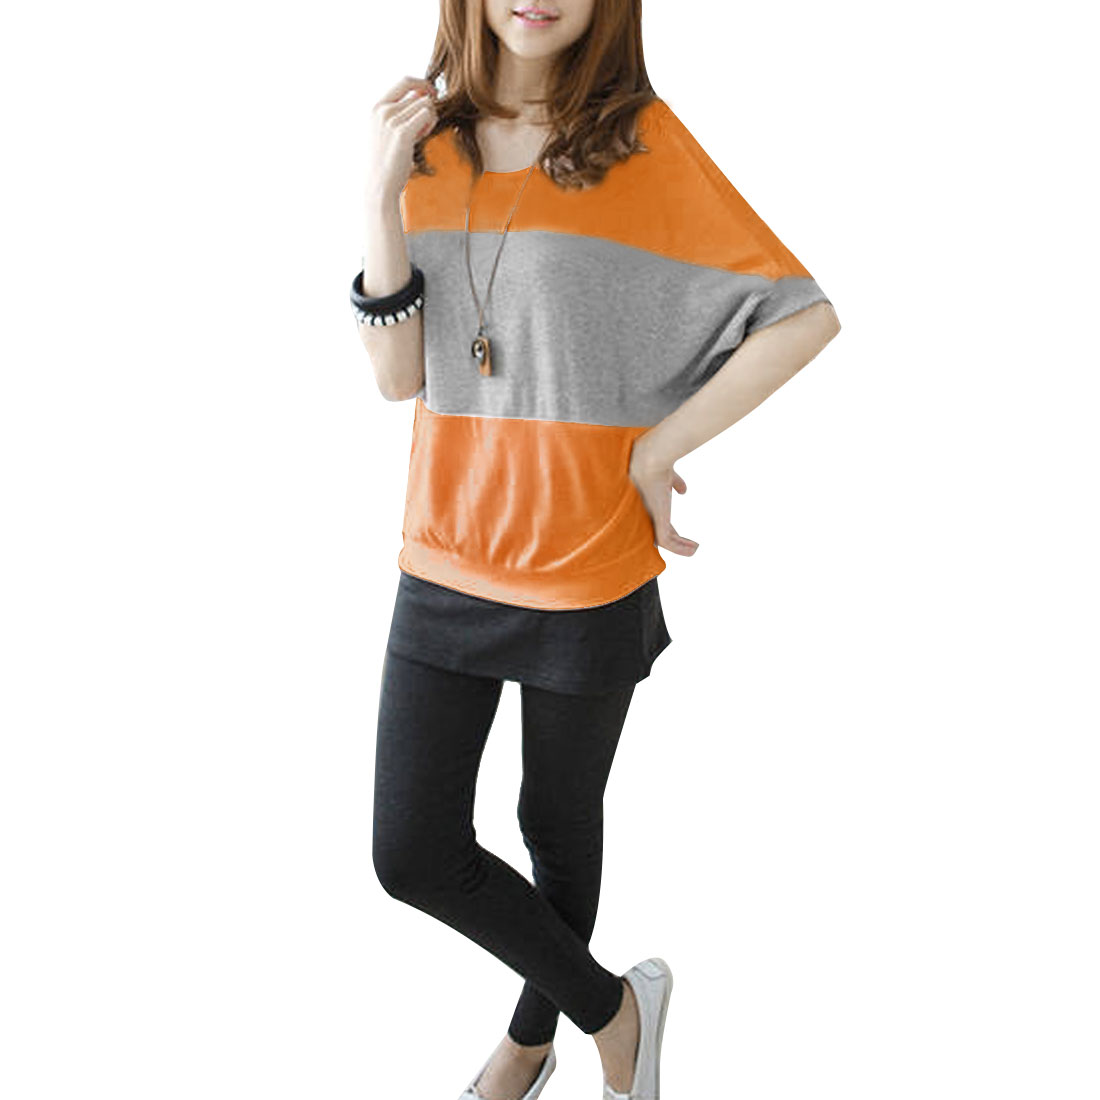 Round Neck Summer Leisure Orange Gray Spliced Top T-shirt M for Woman